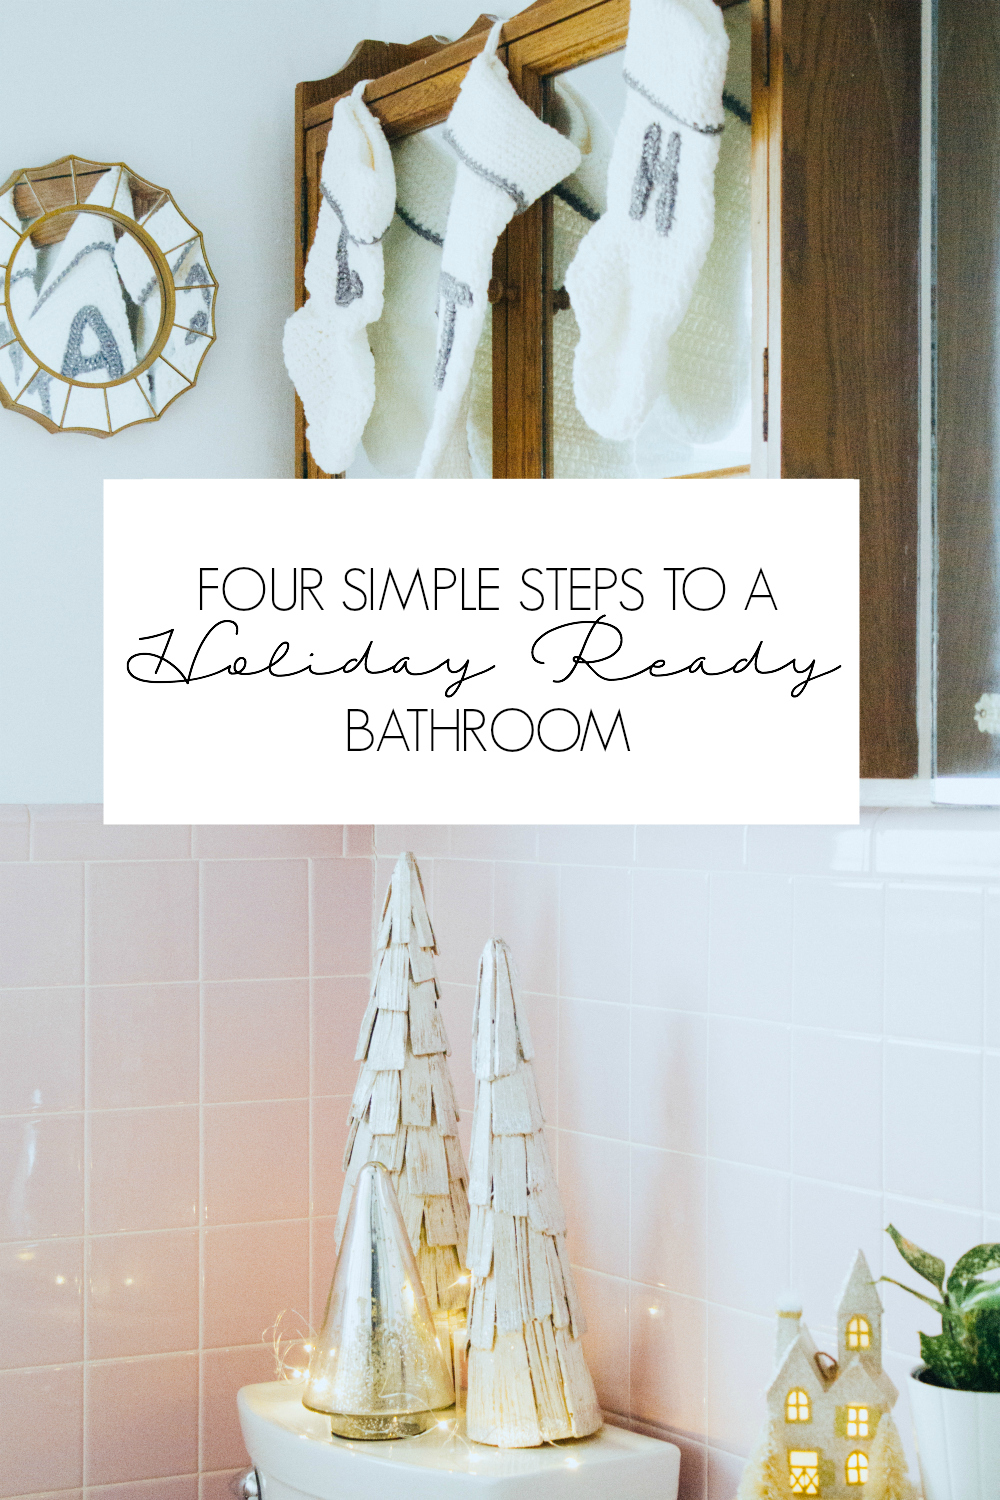 FOUR STEPS TO A HOLIDAY READY BATHROOM